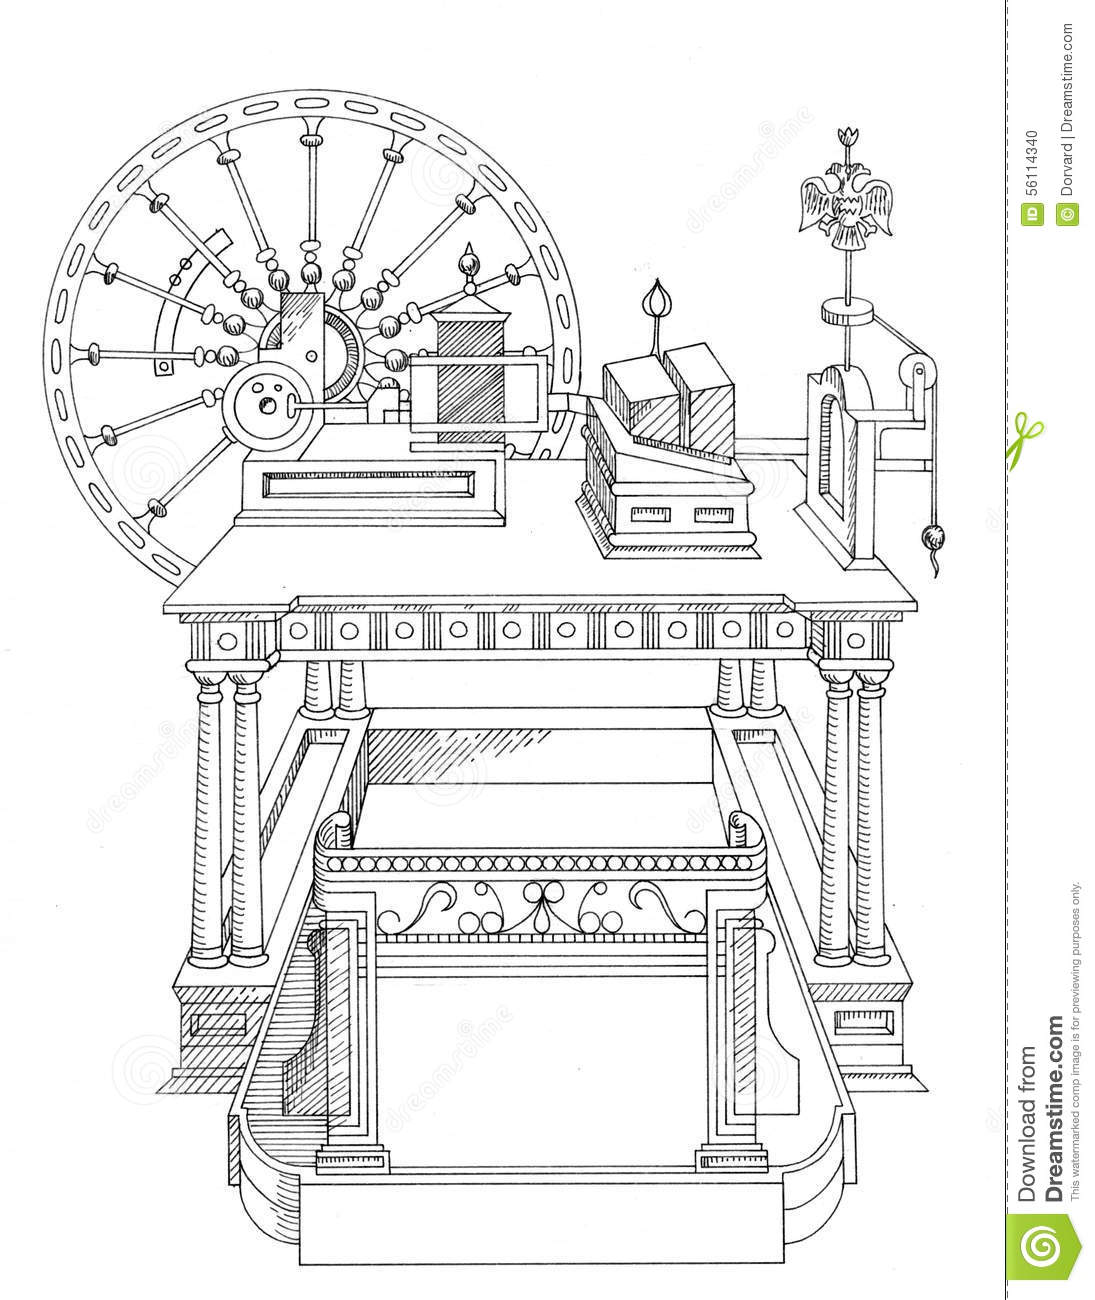 St Lukes Logo 131362 additionally Stock Illustration Drawing Vintage Machinery Old Planer Industrial Revolution Th Century Image56114340 as well Burberry additionally Floor Plans besides Fast Fashion Mango Jumps Aboard To Keep Up With Fast Moving Zara. on manufacturing business